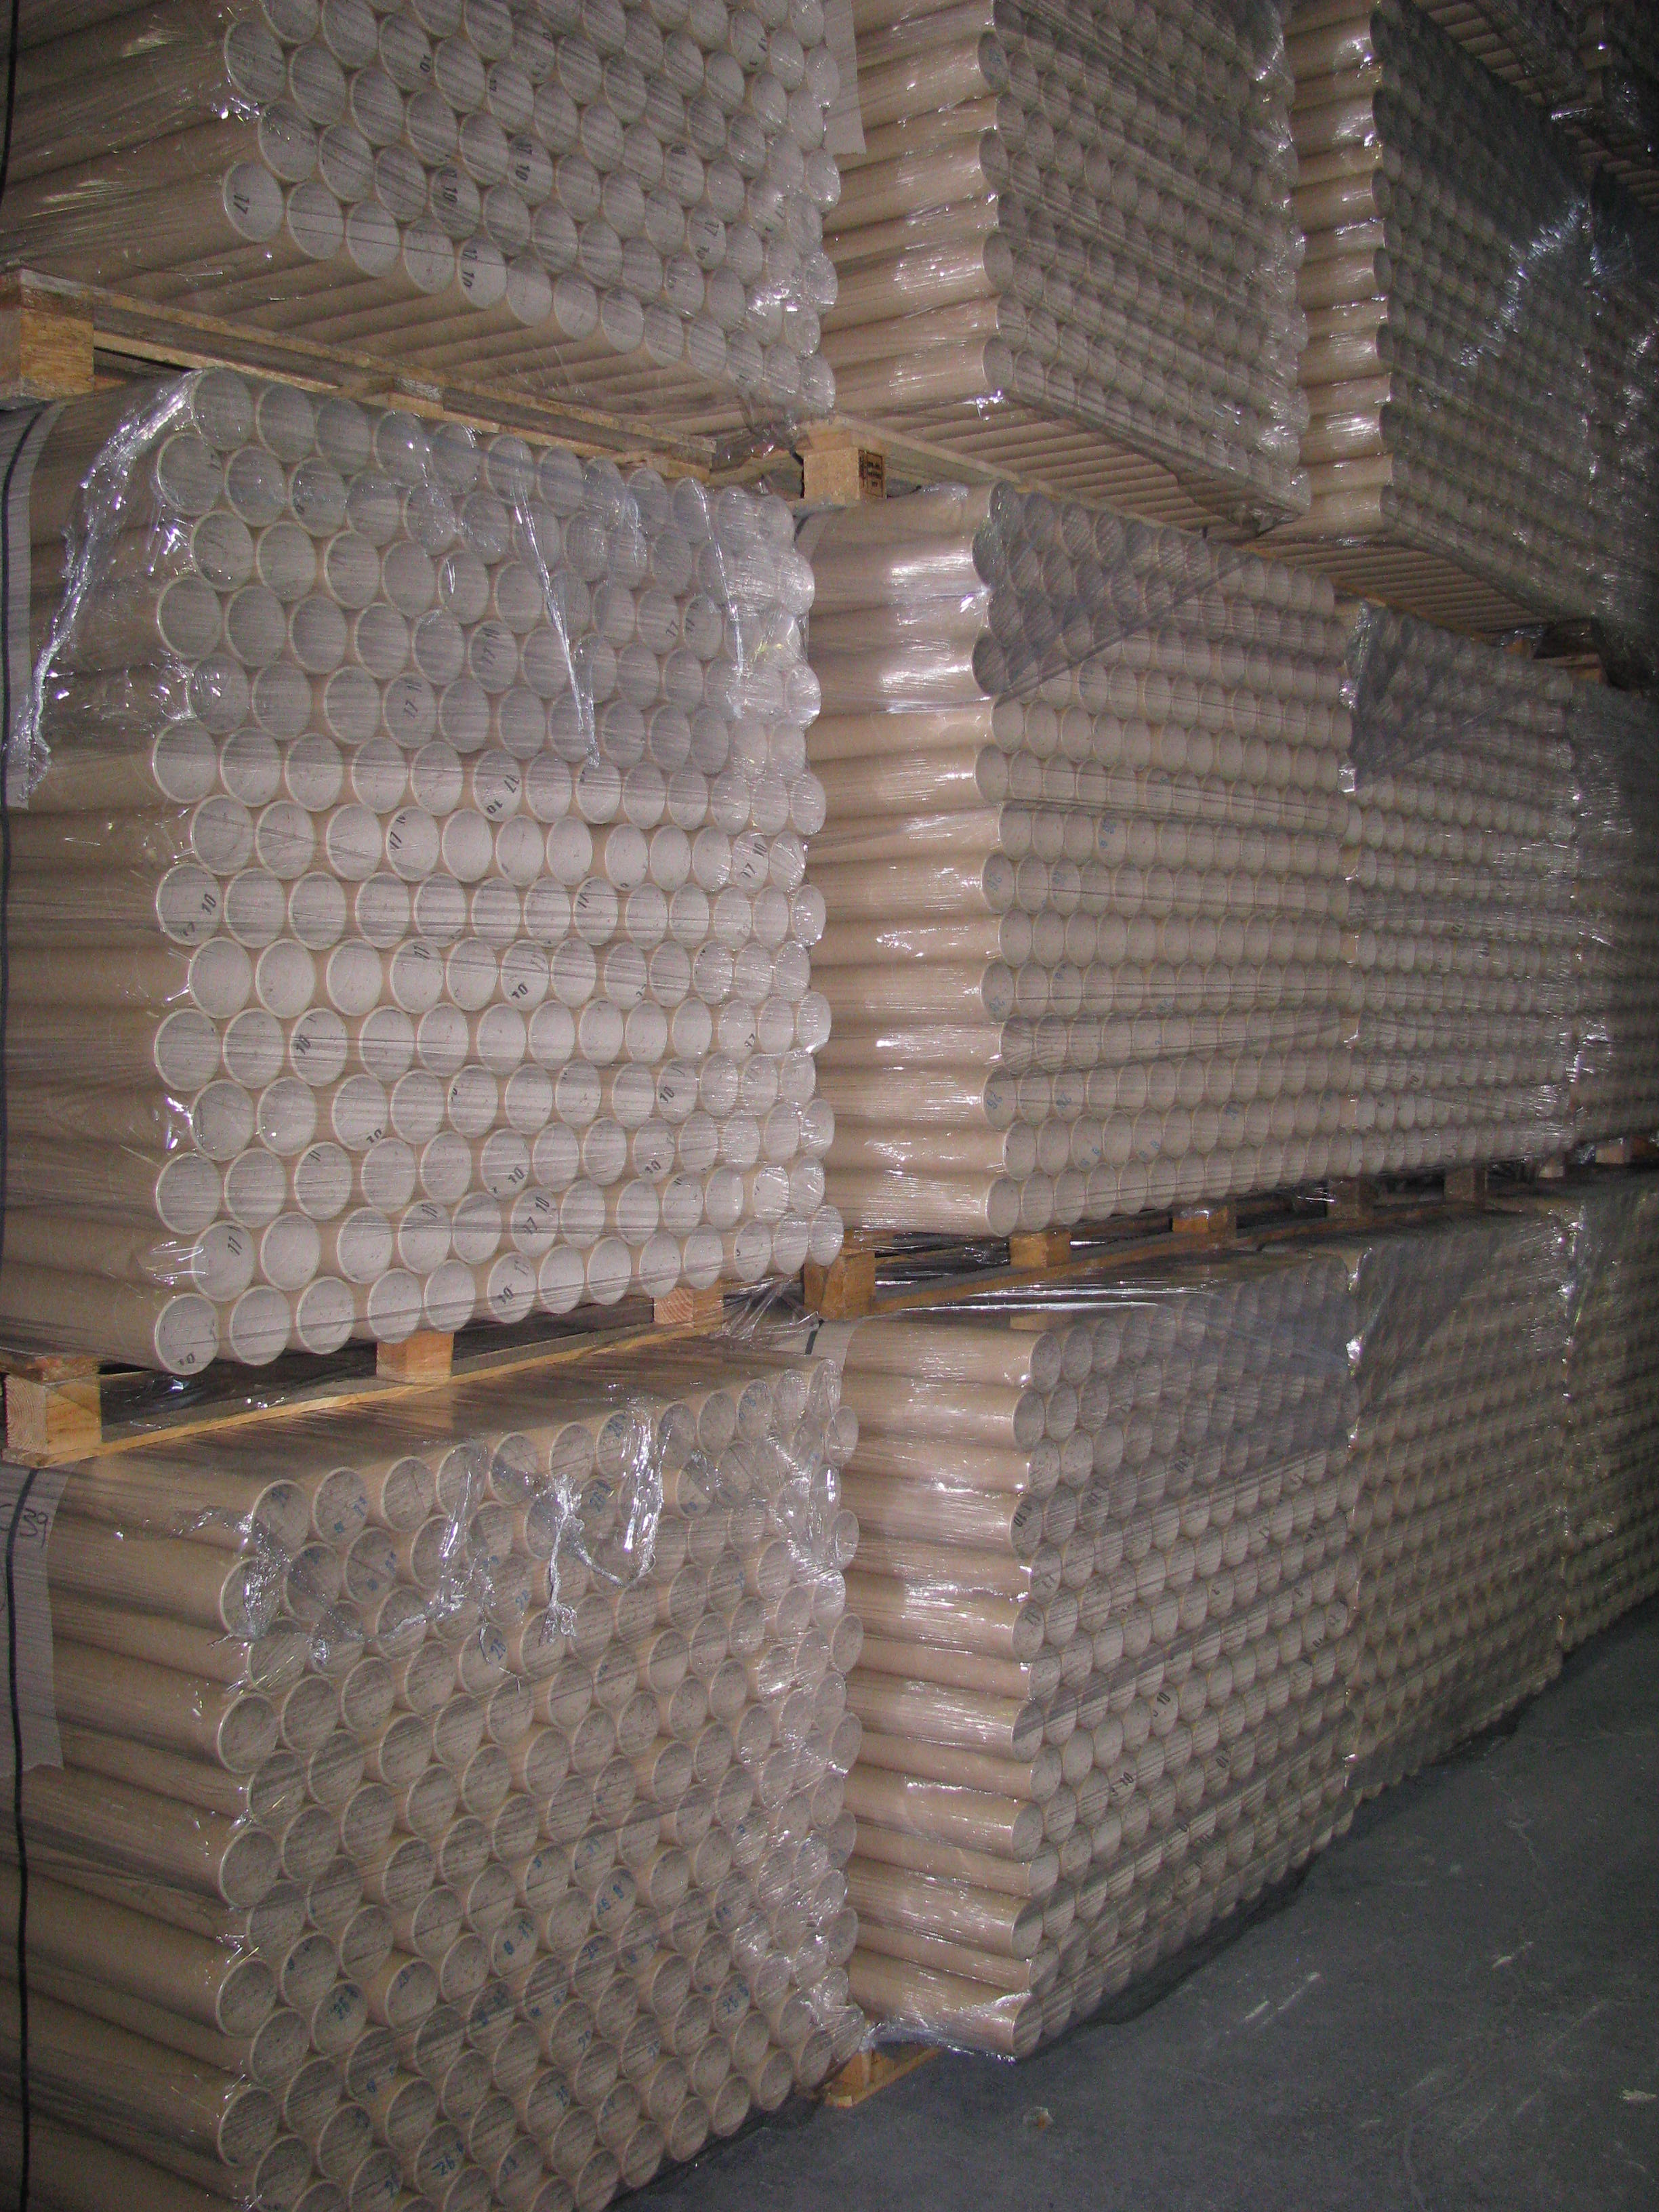 Pallets of Cores